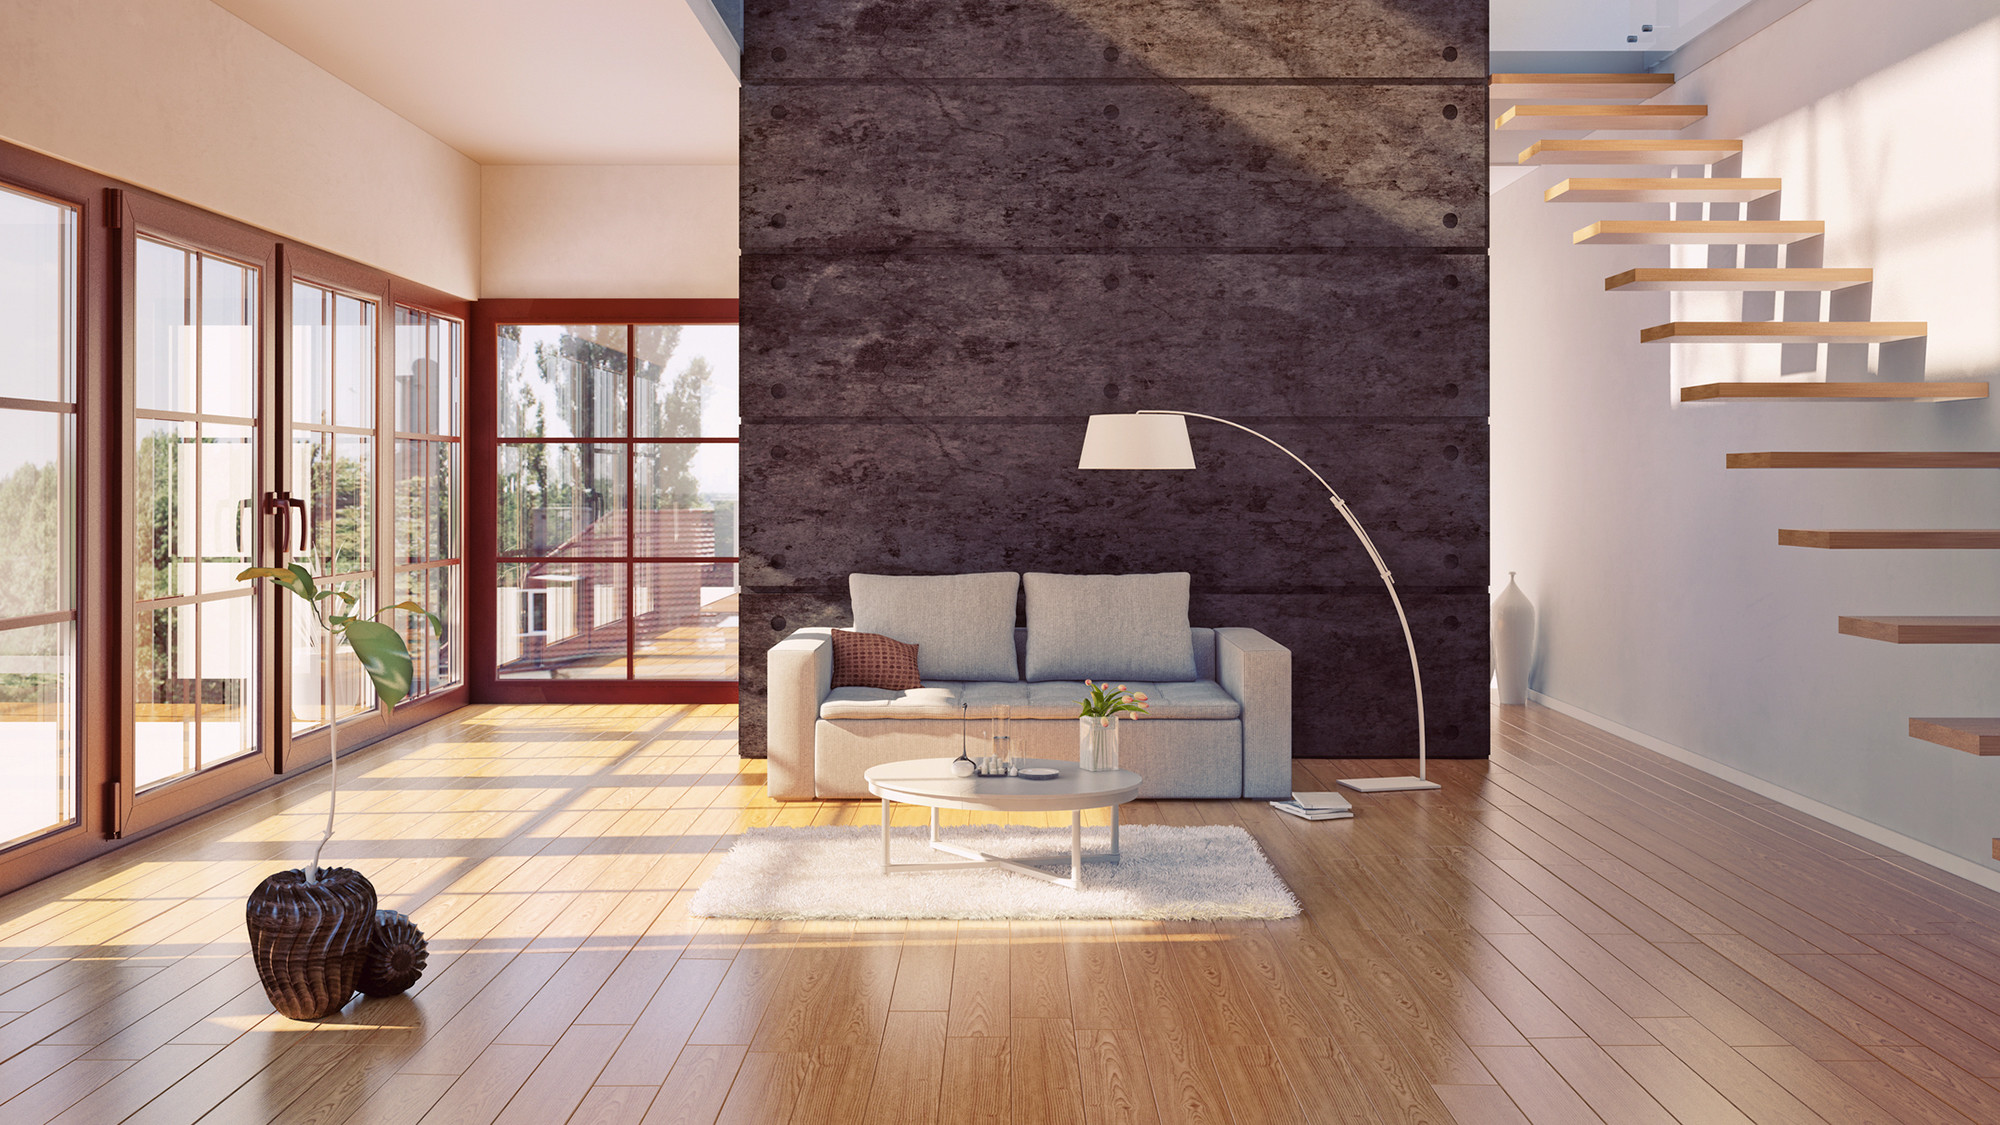 the best steam cleaner for hardwood floors of do hardwood floors provide the best return on investment realtor coma in hardwood floors investment